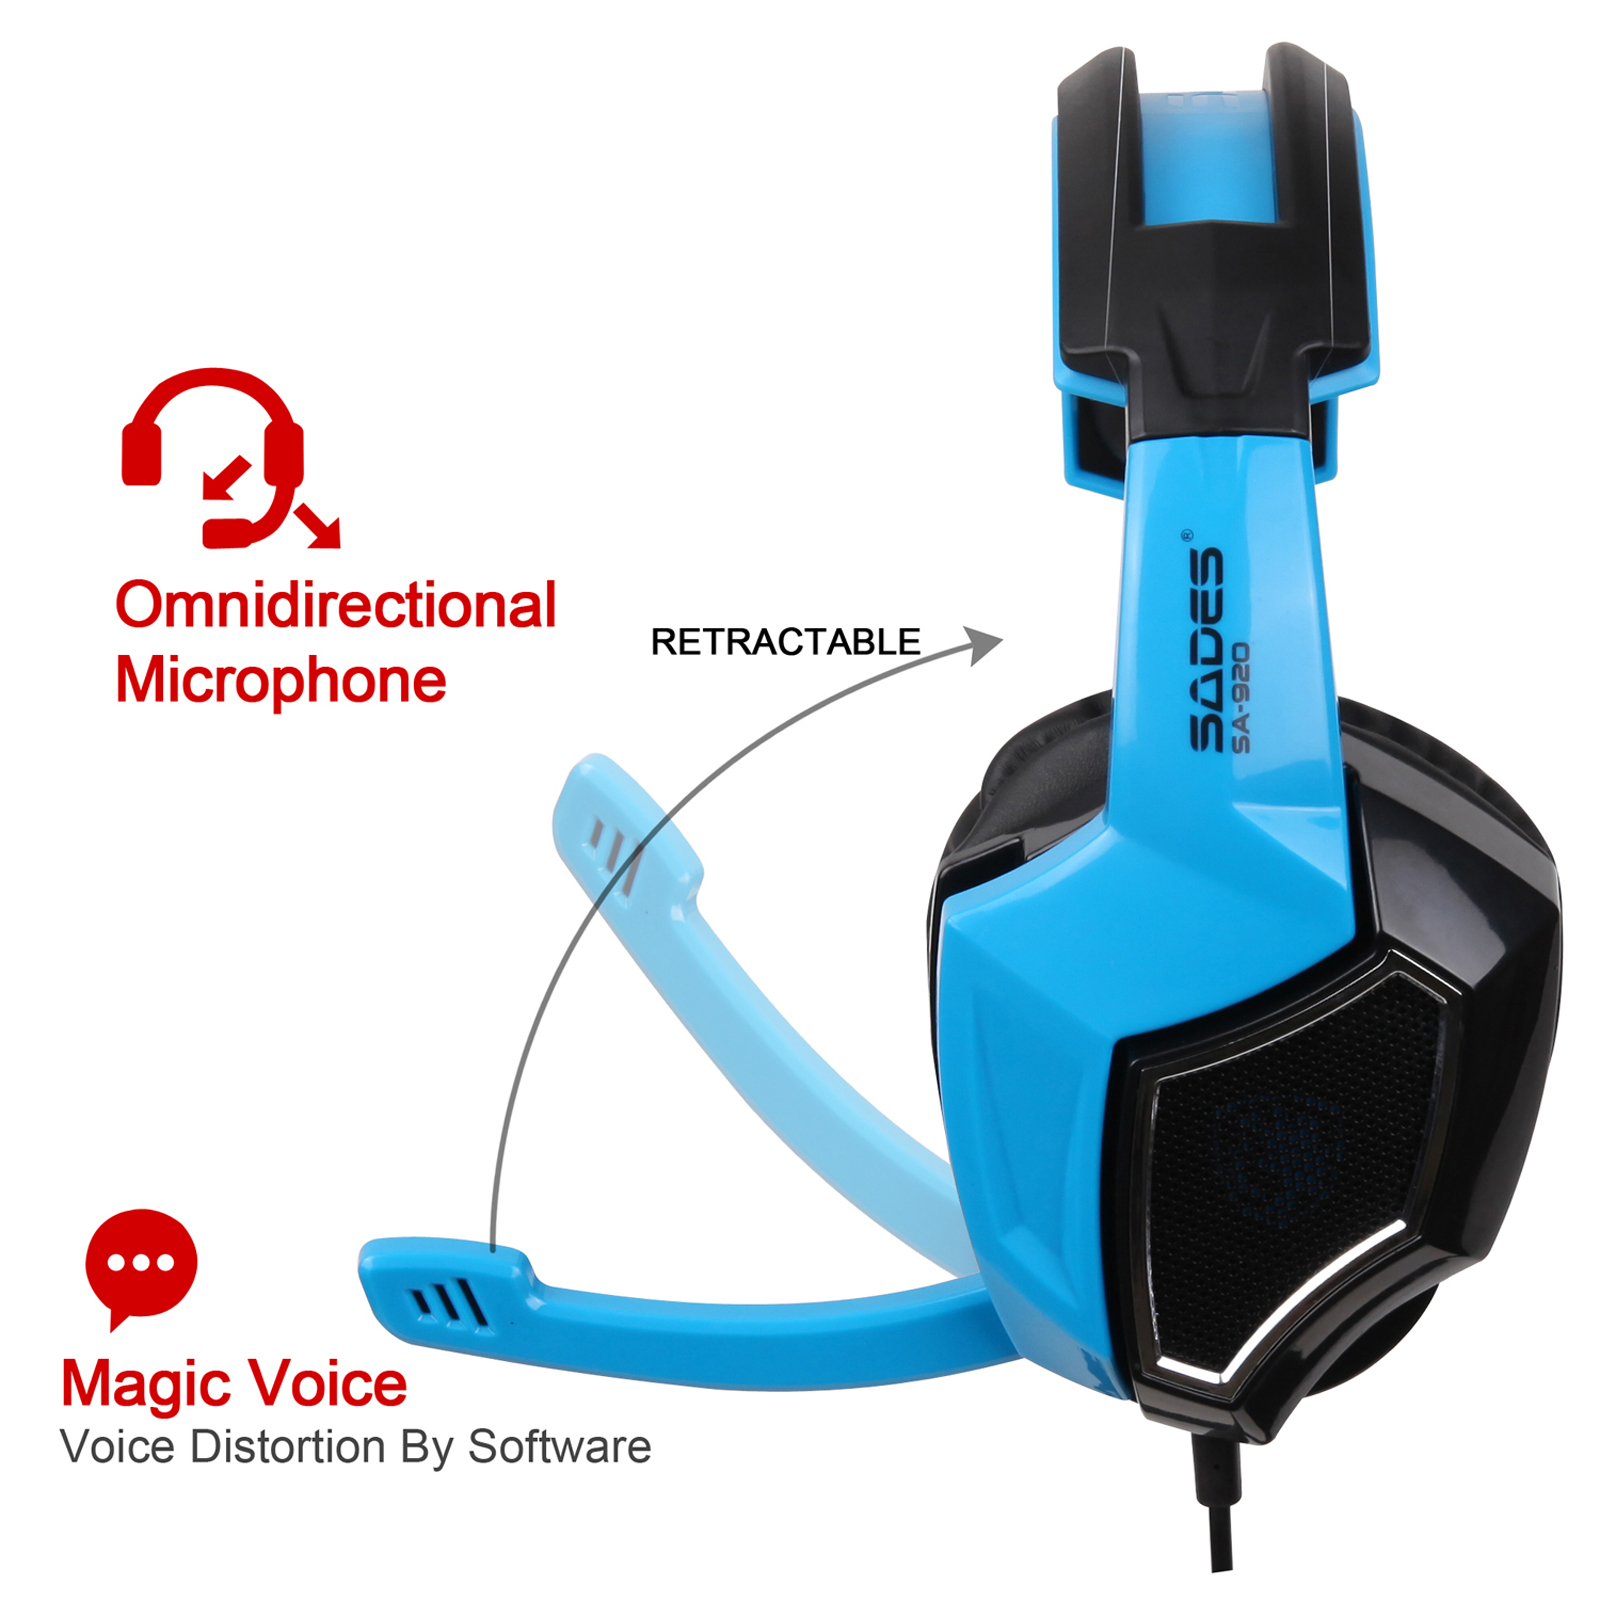 Pc Headset Wiring Diagram Modern Design Of Together With Ipod Headphone On Usb Wire Sades Gaming Stereo 3 5mm Wired W Mic Jack Plug